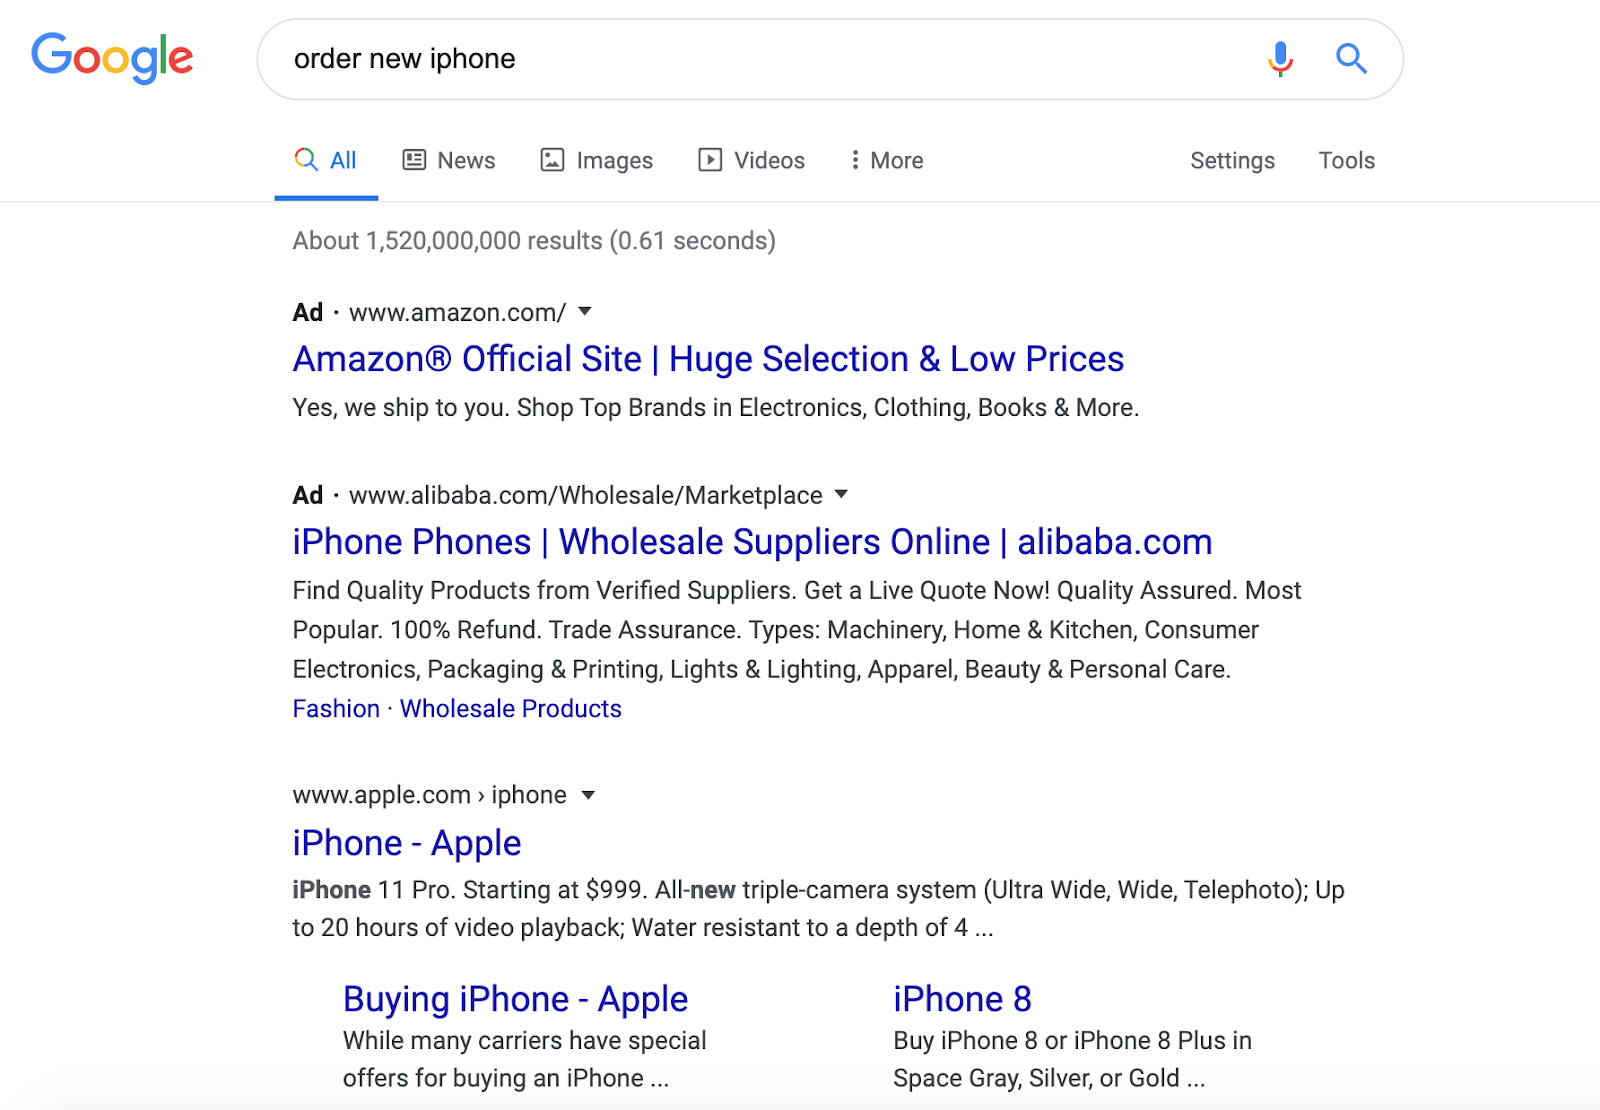 google search results order new iphone - search queries